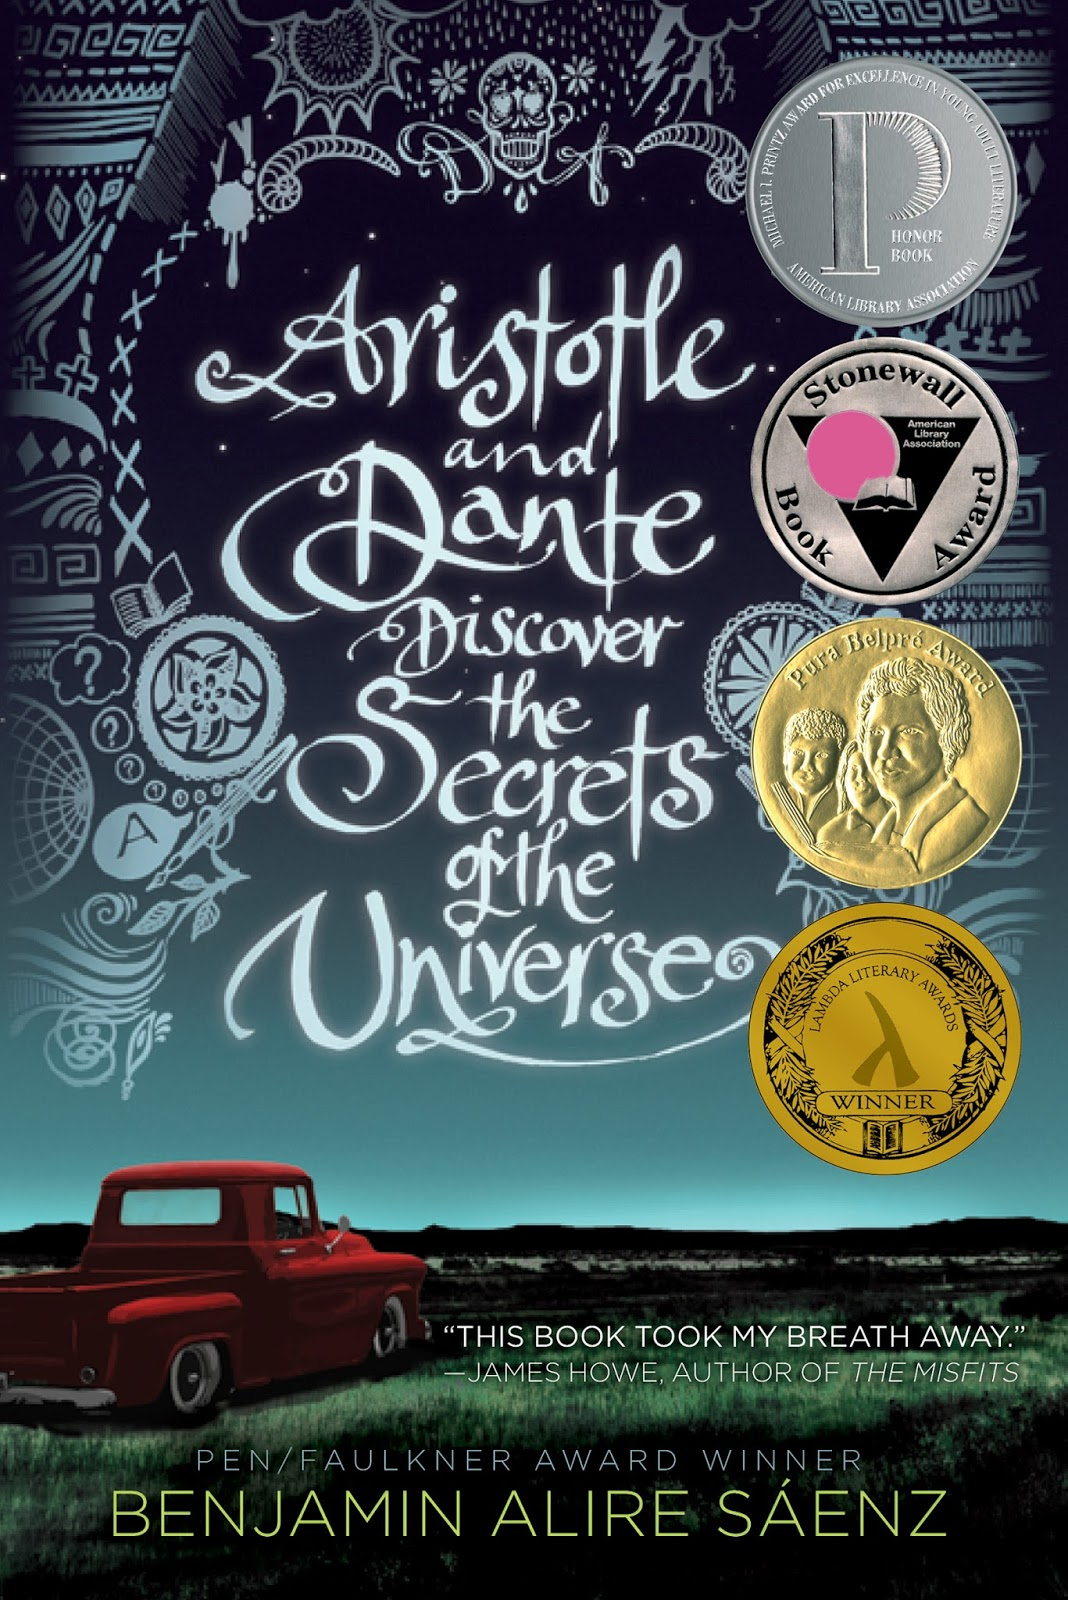 http://nothingbutn9erz.blogspot.co.at/2015/02/aristotle-and-dante-discover-secrets-of-the-universe-benjamin-alire-saenz.html